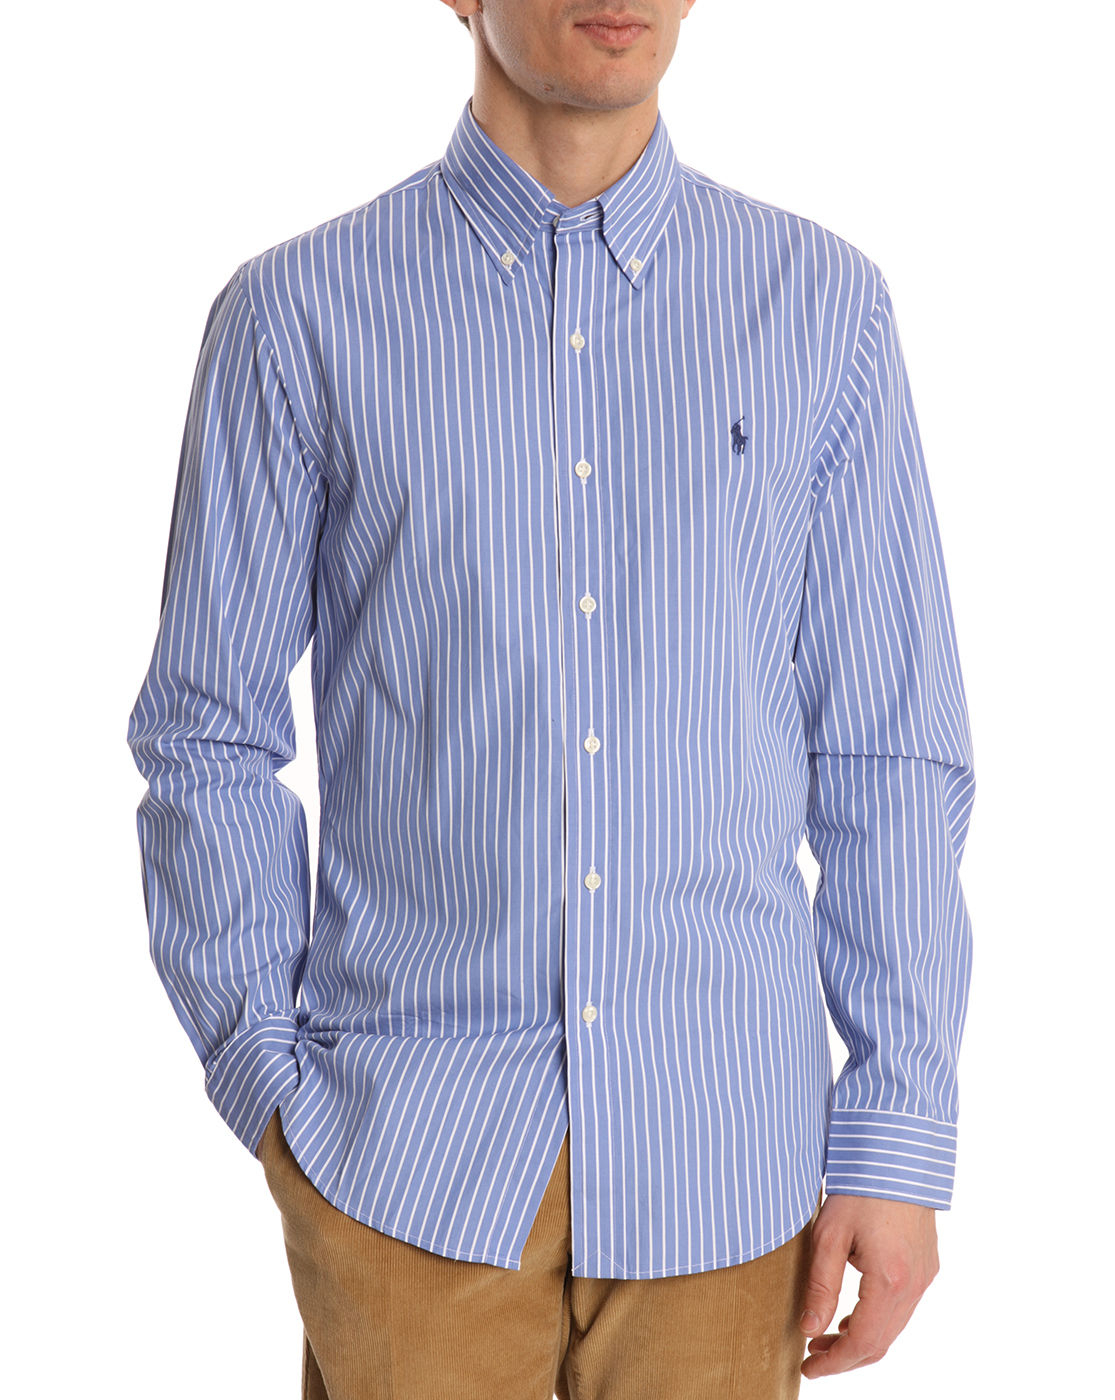 Polo ralph lauren blue and white striped shirt in blue for for Blue and white shirt mens